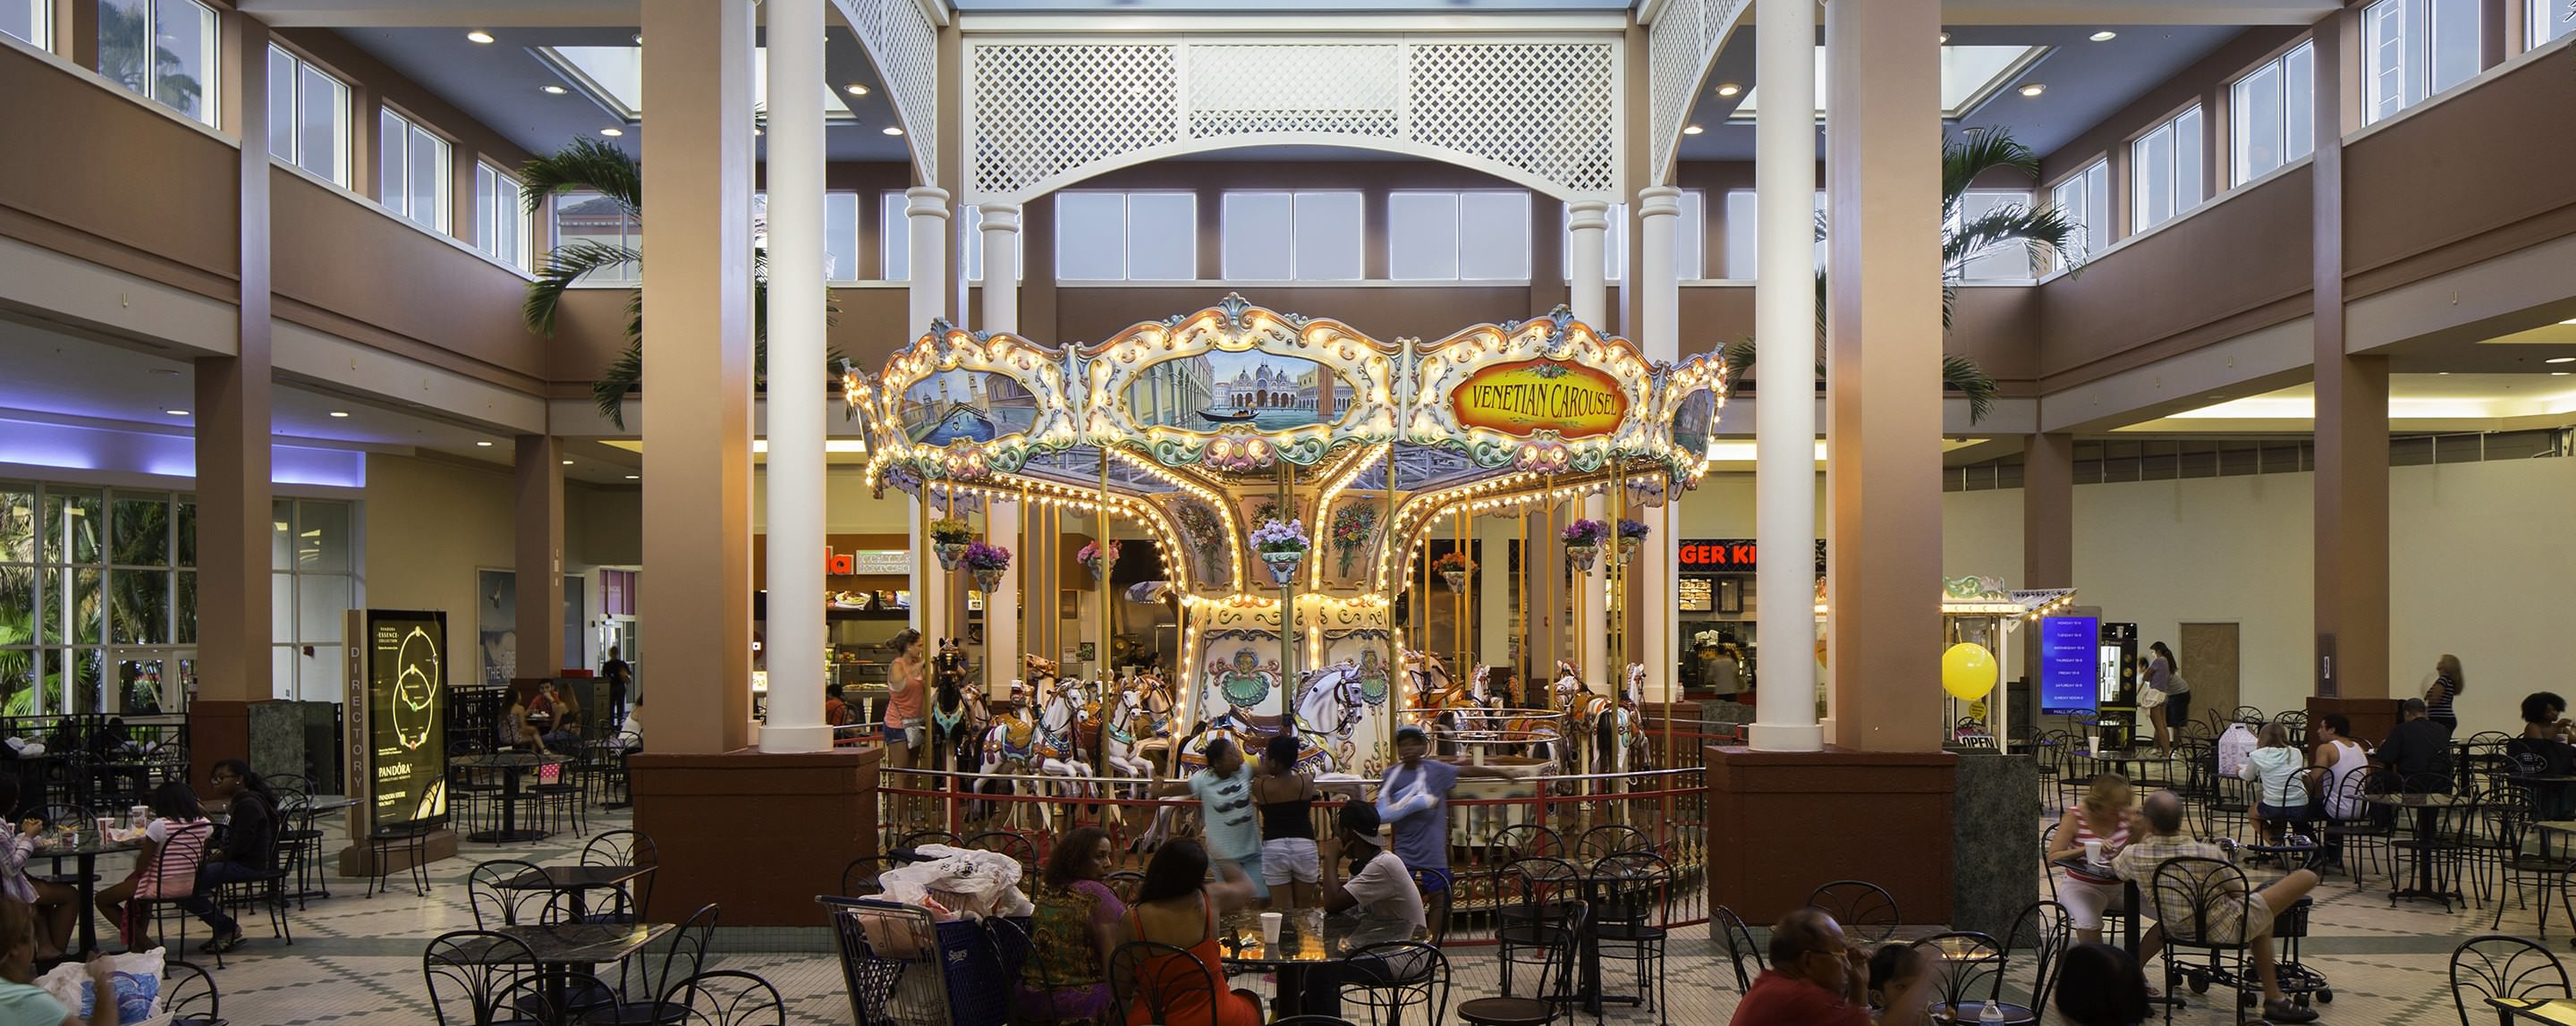 A carousel is seen in the Pembroke Lakes food court for guests to enjoy with their children.